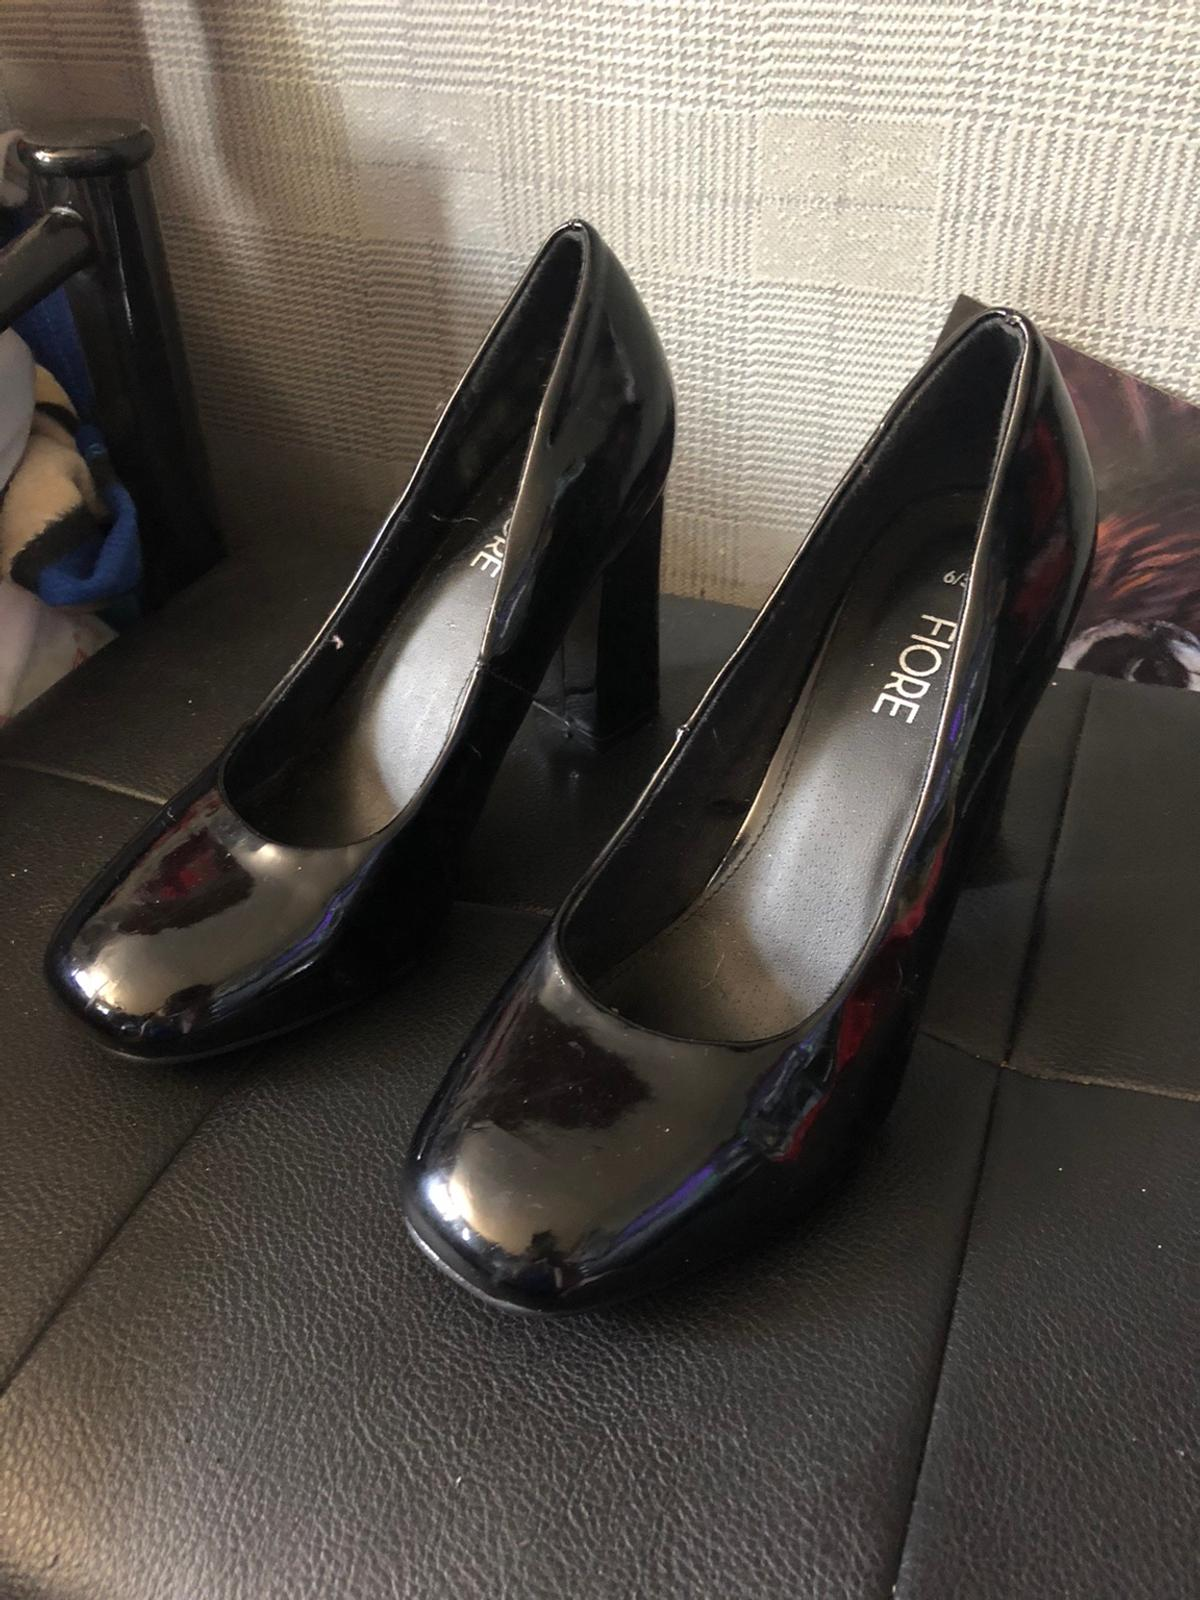 No wear or tear damage Pick up only unless near area Shoes £10 Heels £6 Or both for £14